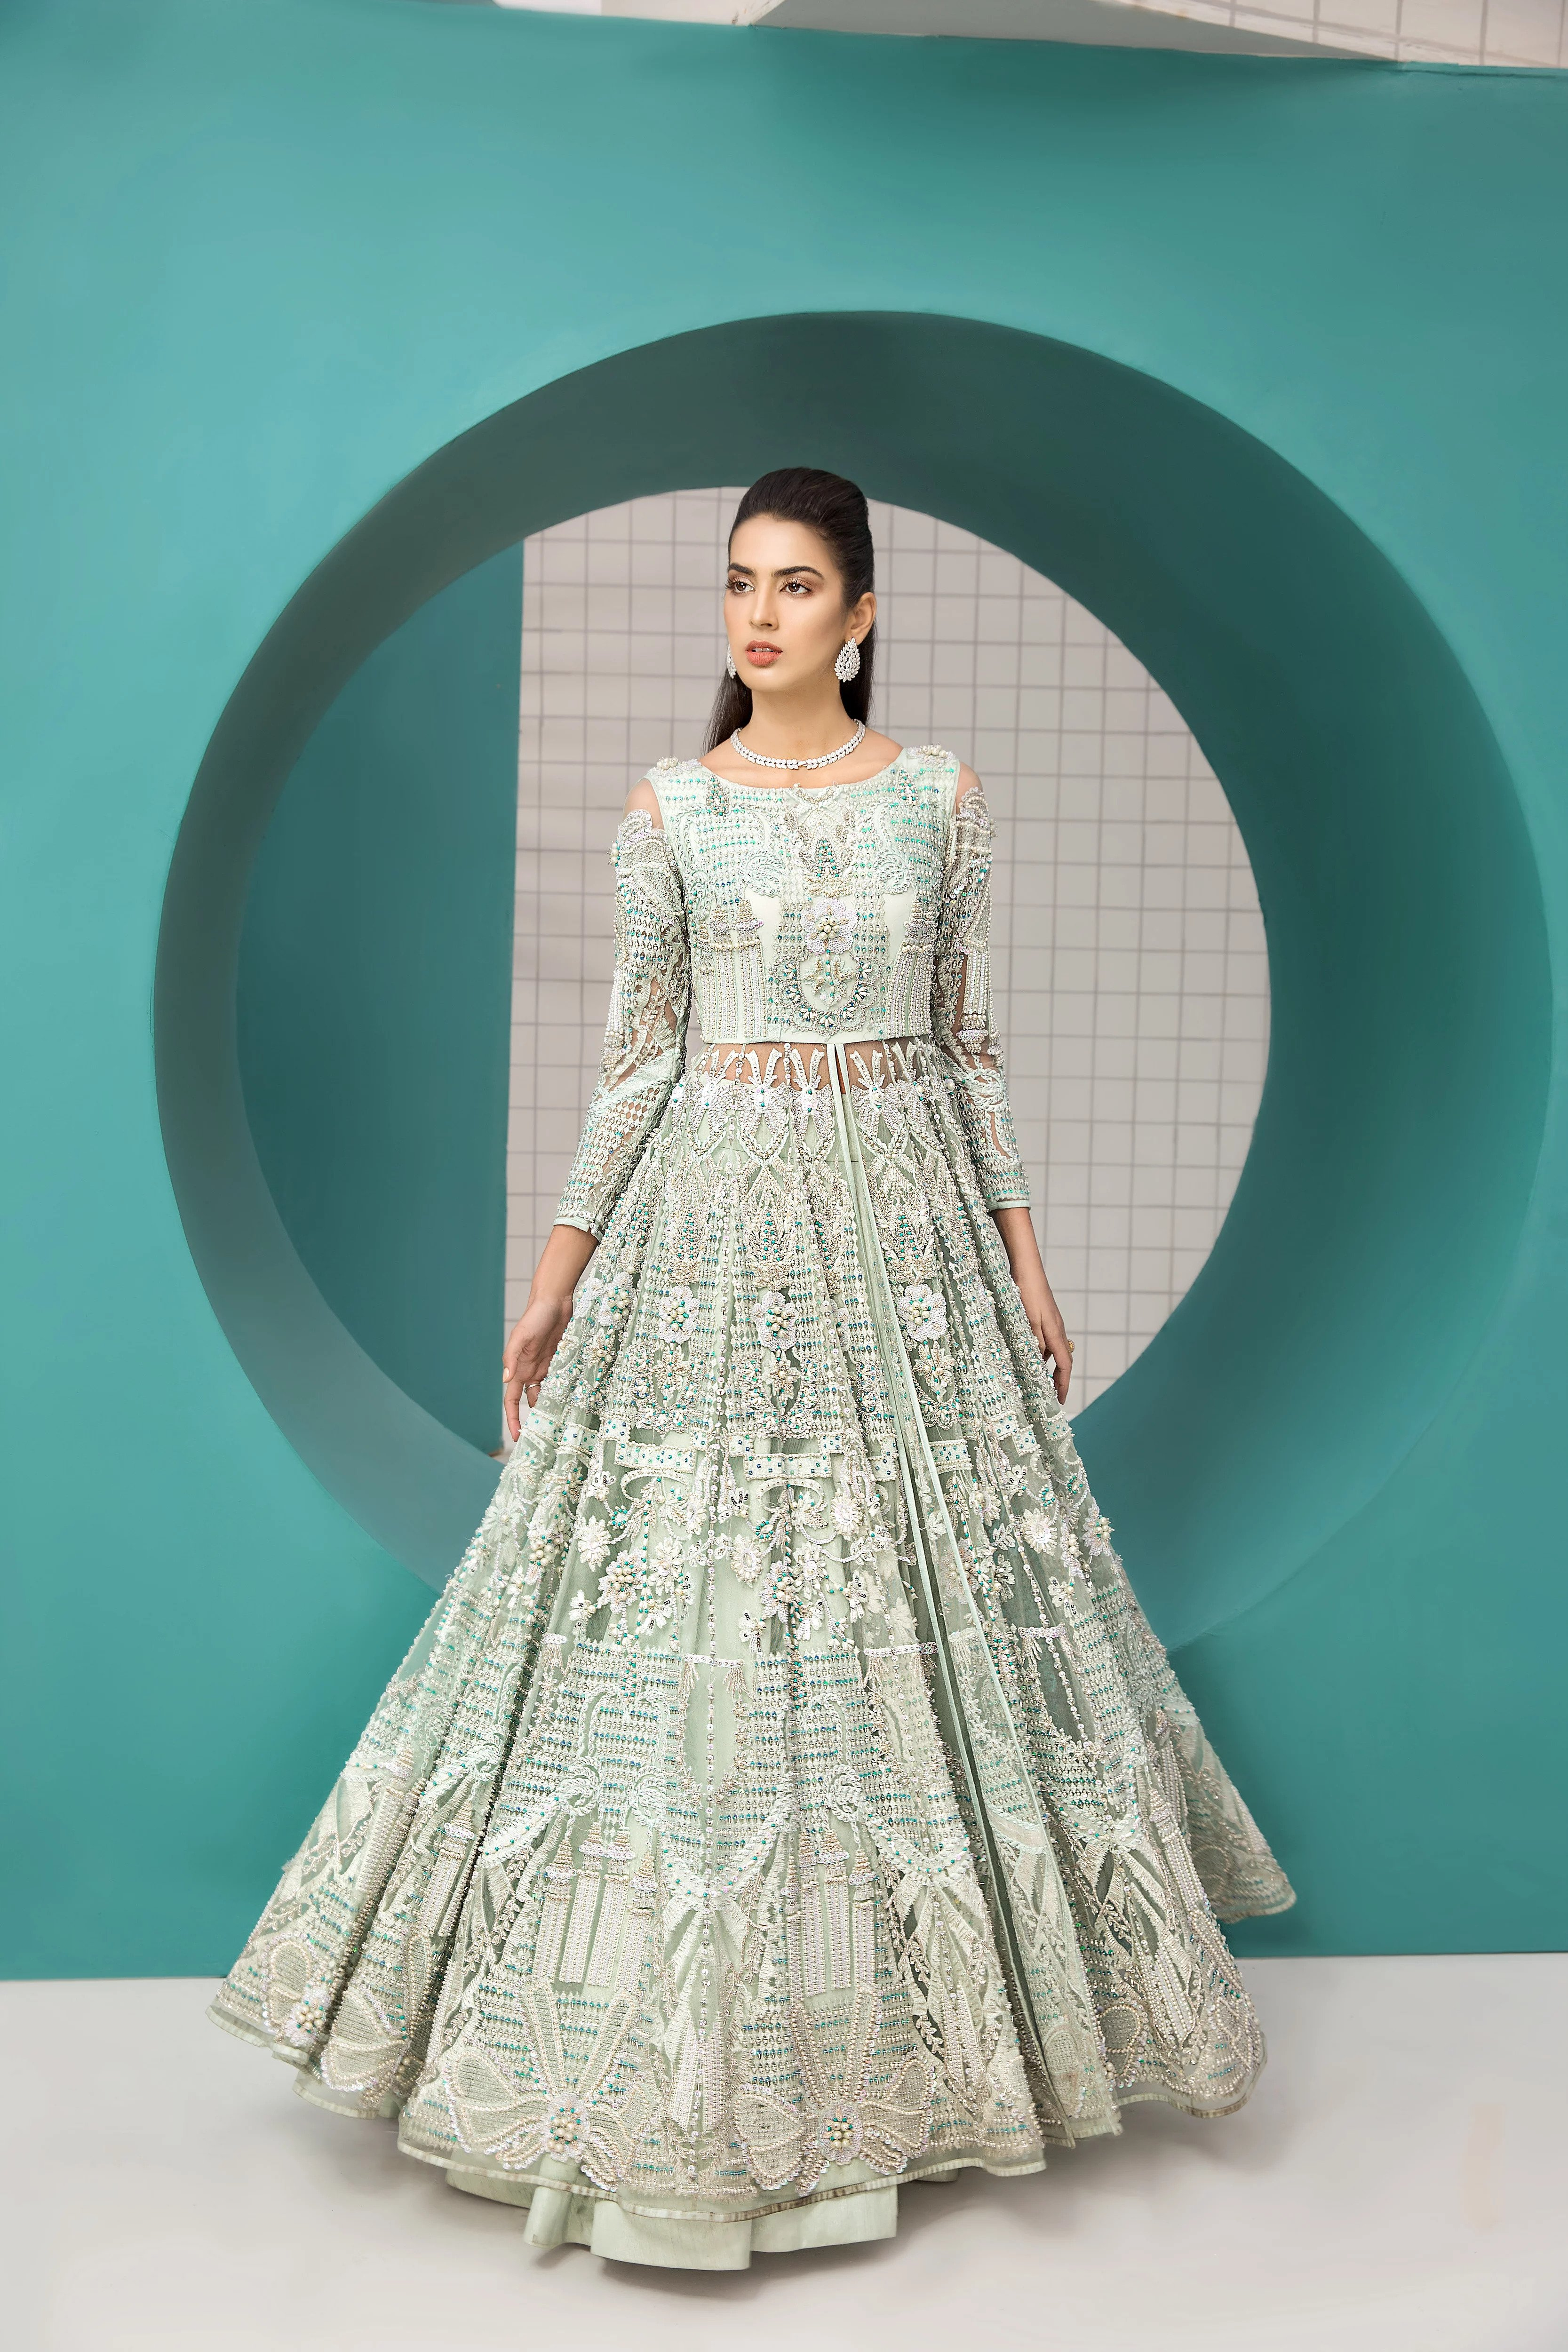 Latest Erum Khan Bridal Dresses Collection 2020 With Prices,Where To Sell Wedding Dress Locally